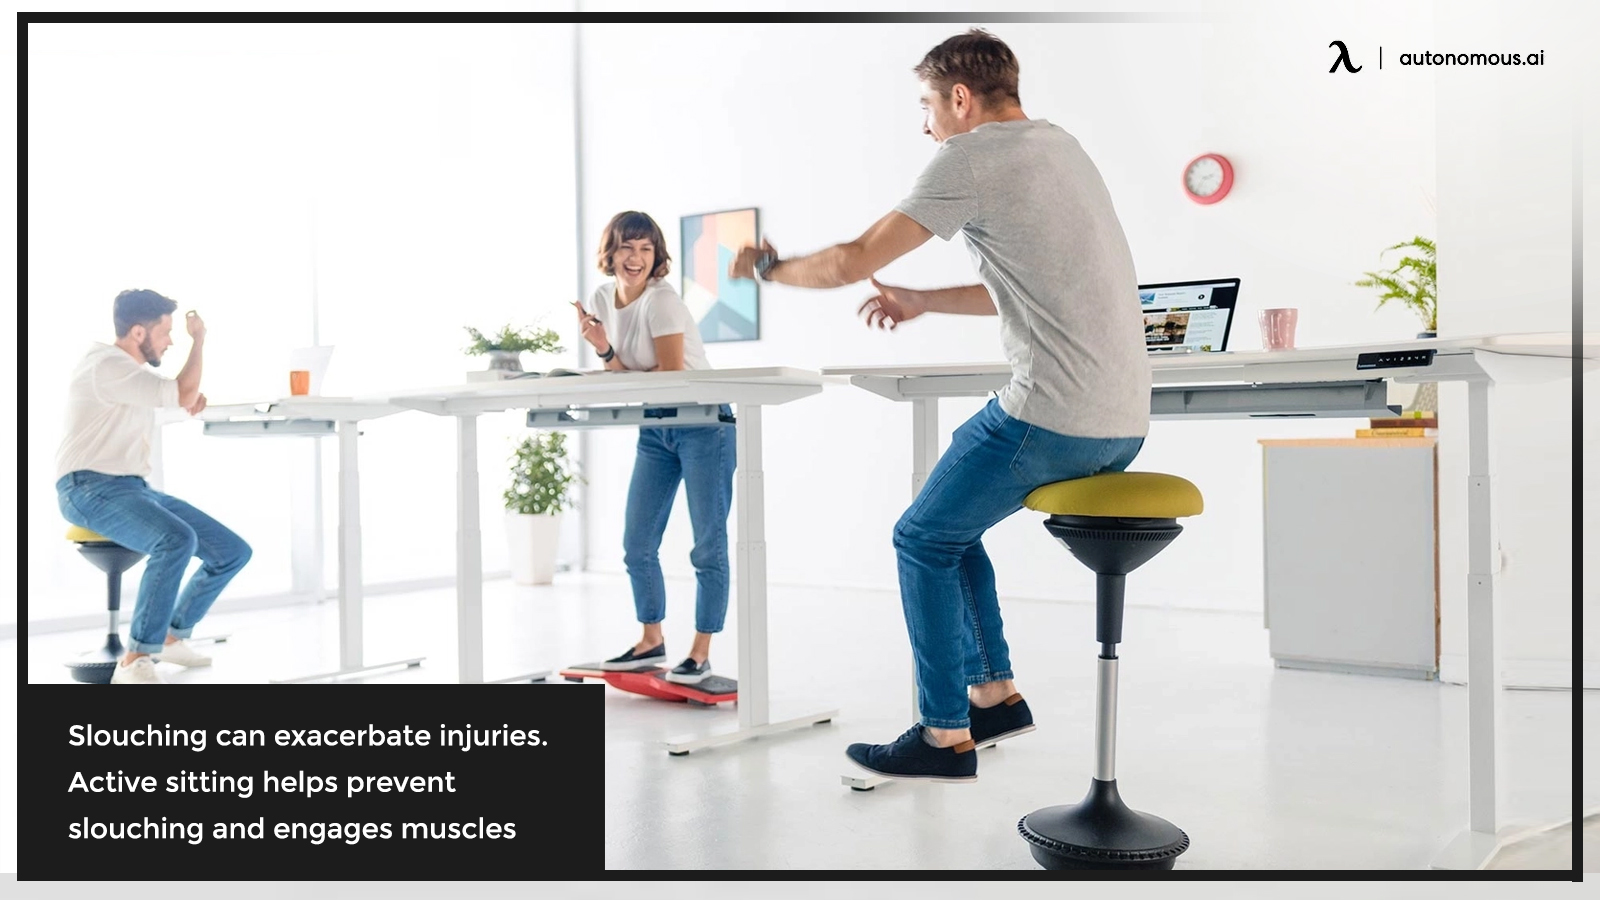 Slouching and active sitting